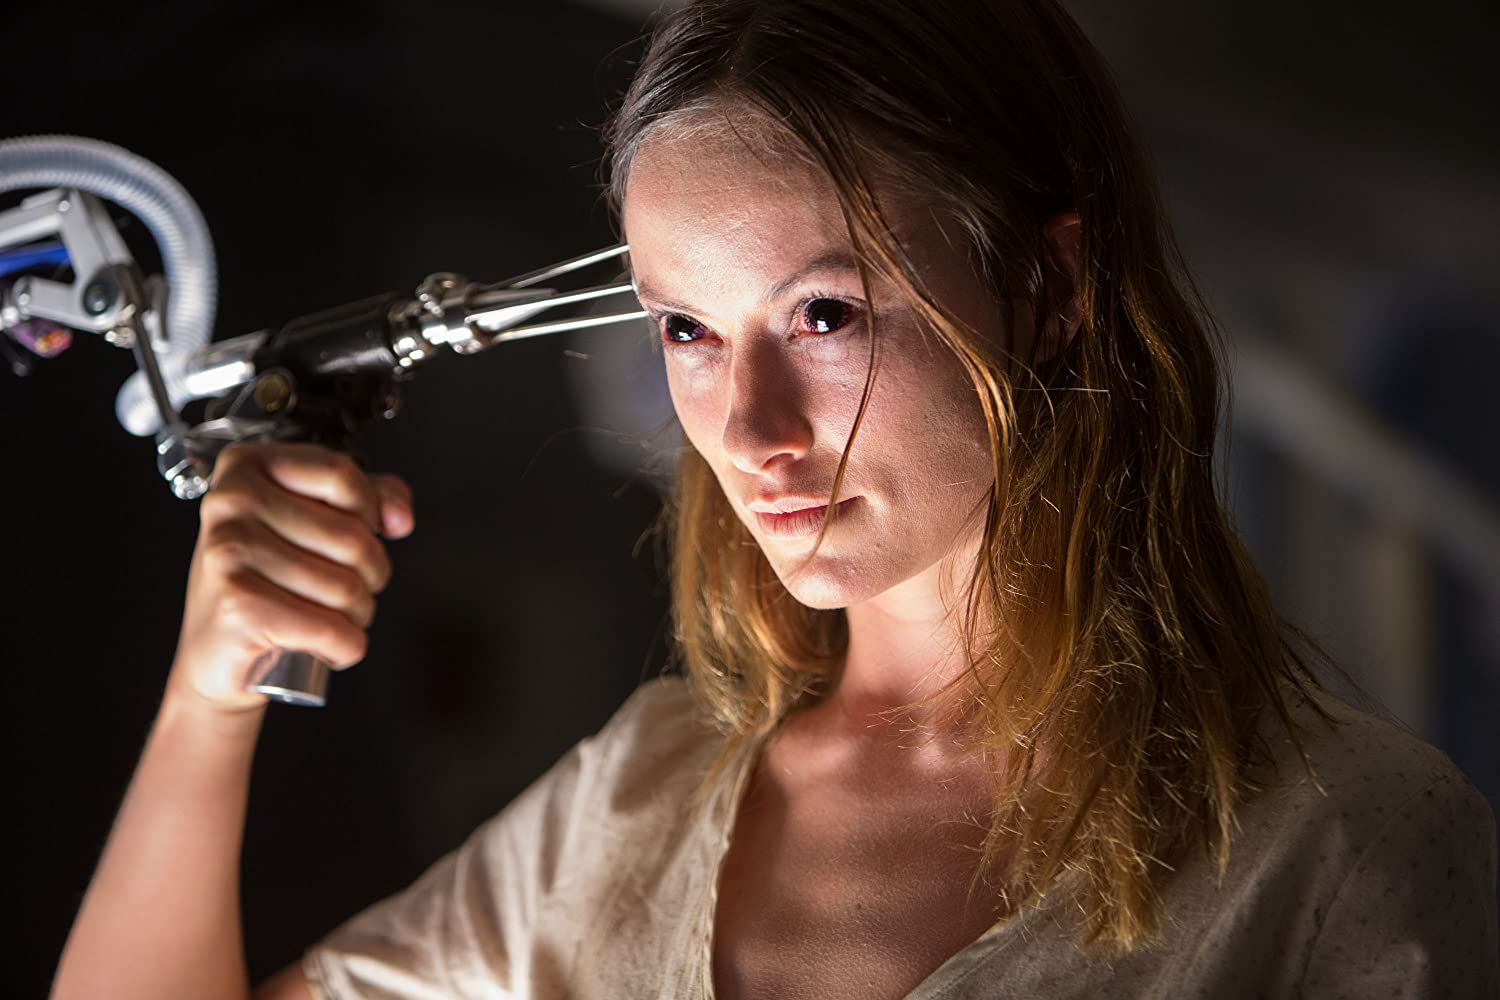 Olivia Wilde in The Lazarus Effect (2015)